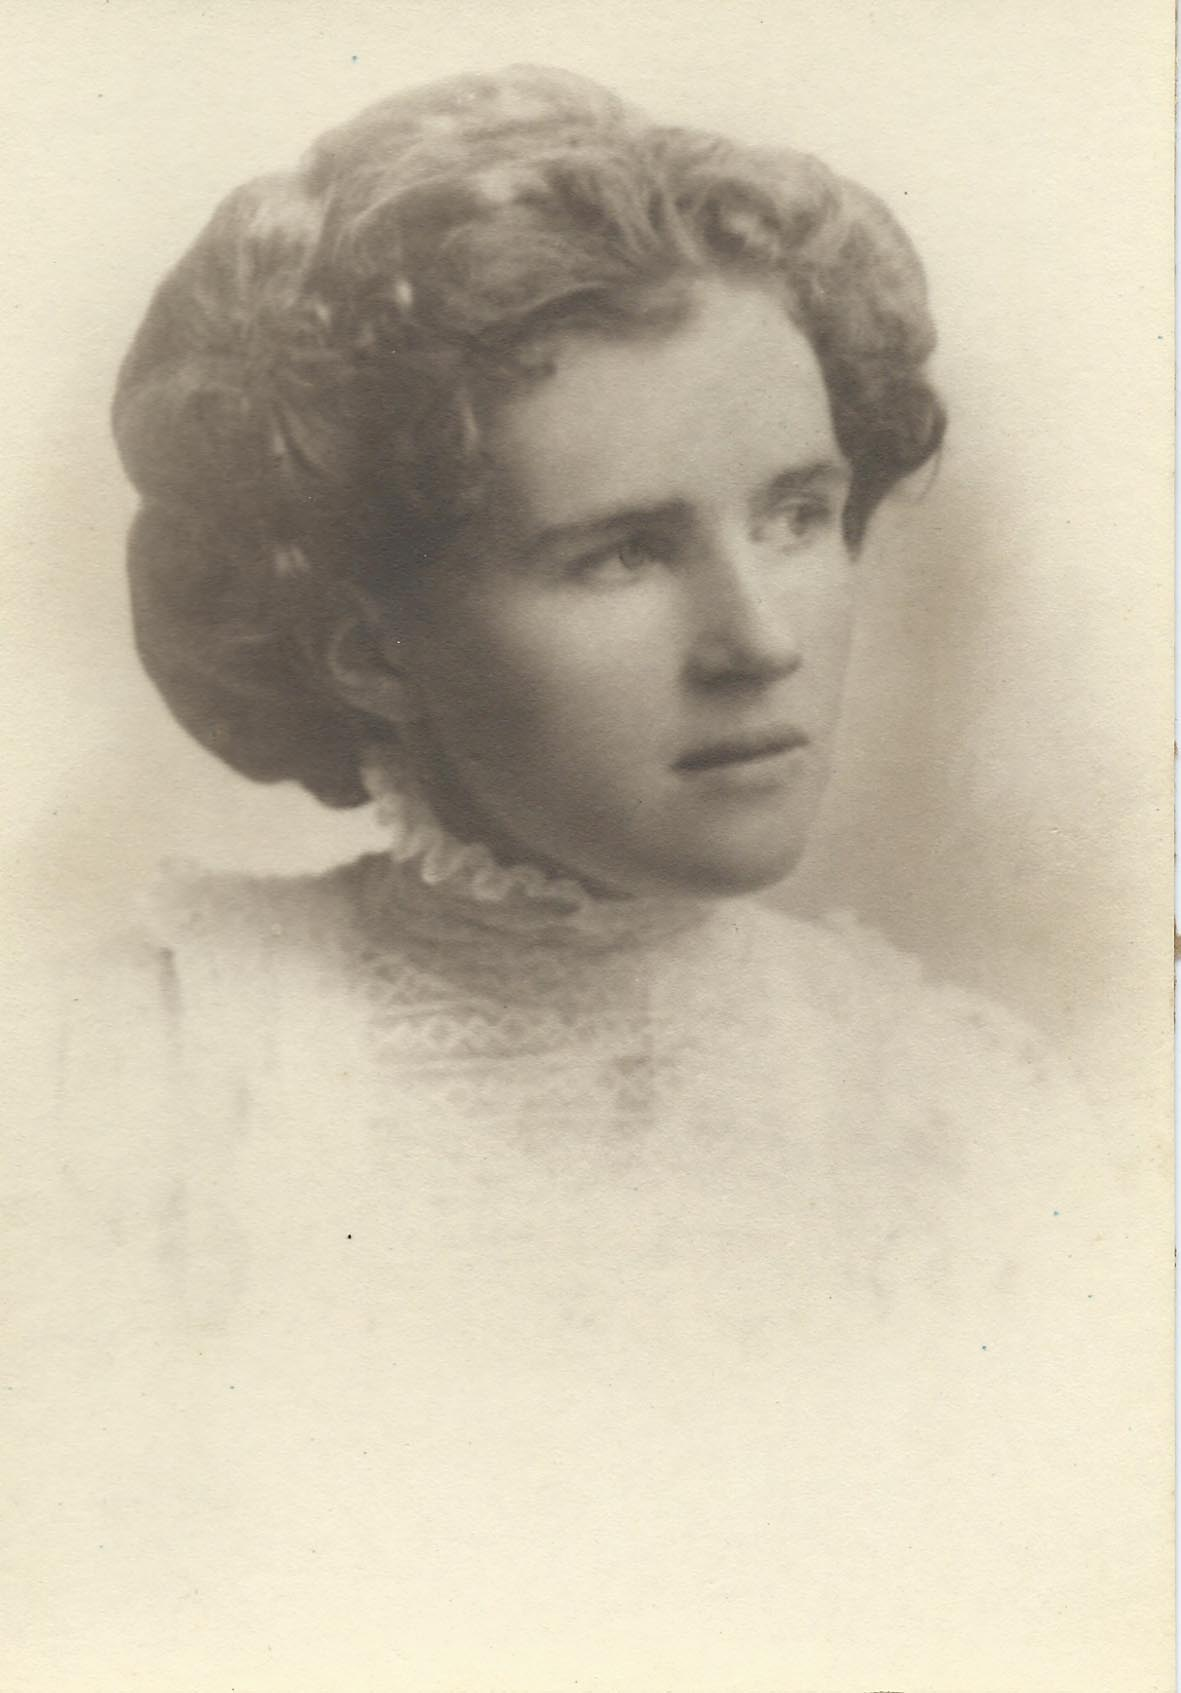 Illustrator of Ethel Wilkinson